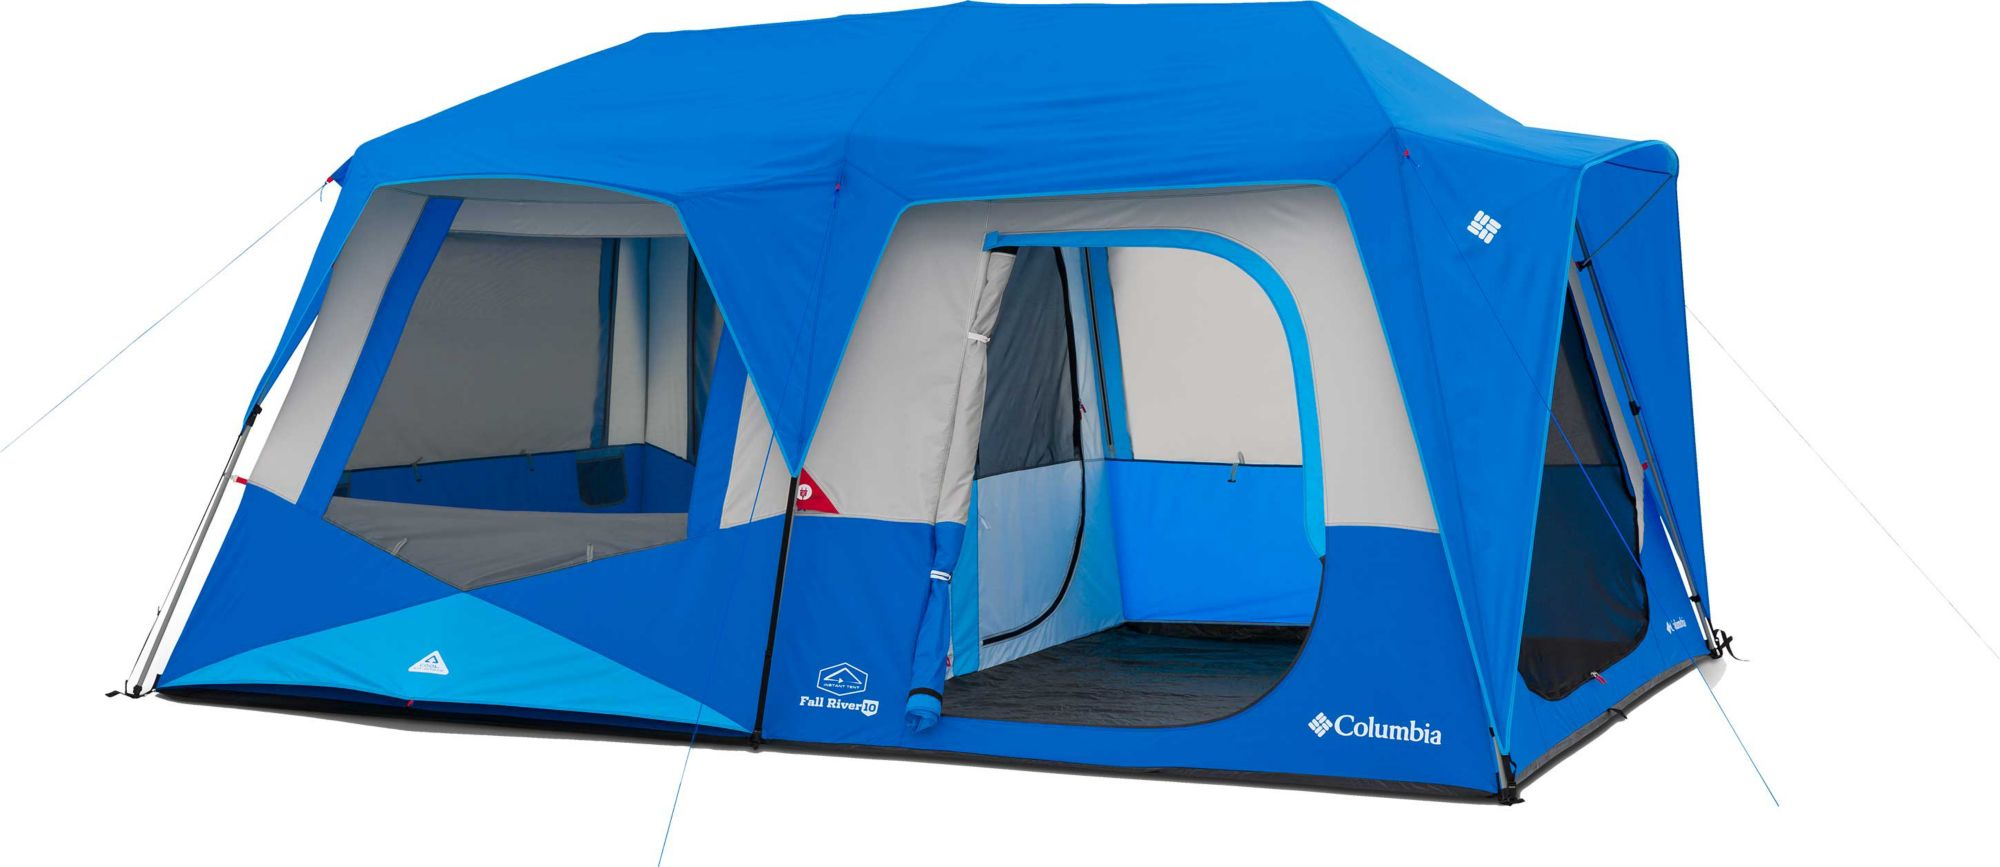 noImageFound ???  sc 1 st  DICKu0027S Sporting Goods & Columbia Fall River 10 Person Instant Tent | DICKu0027S Sporting Goods